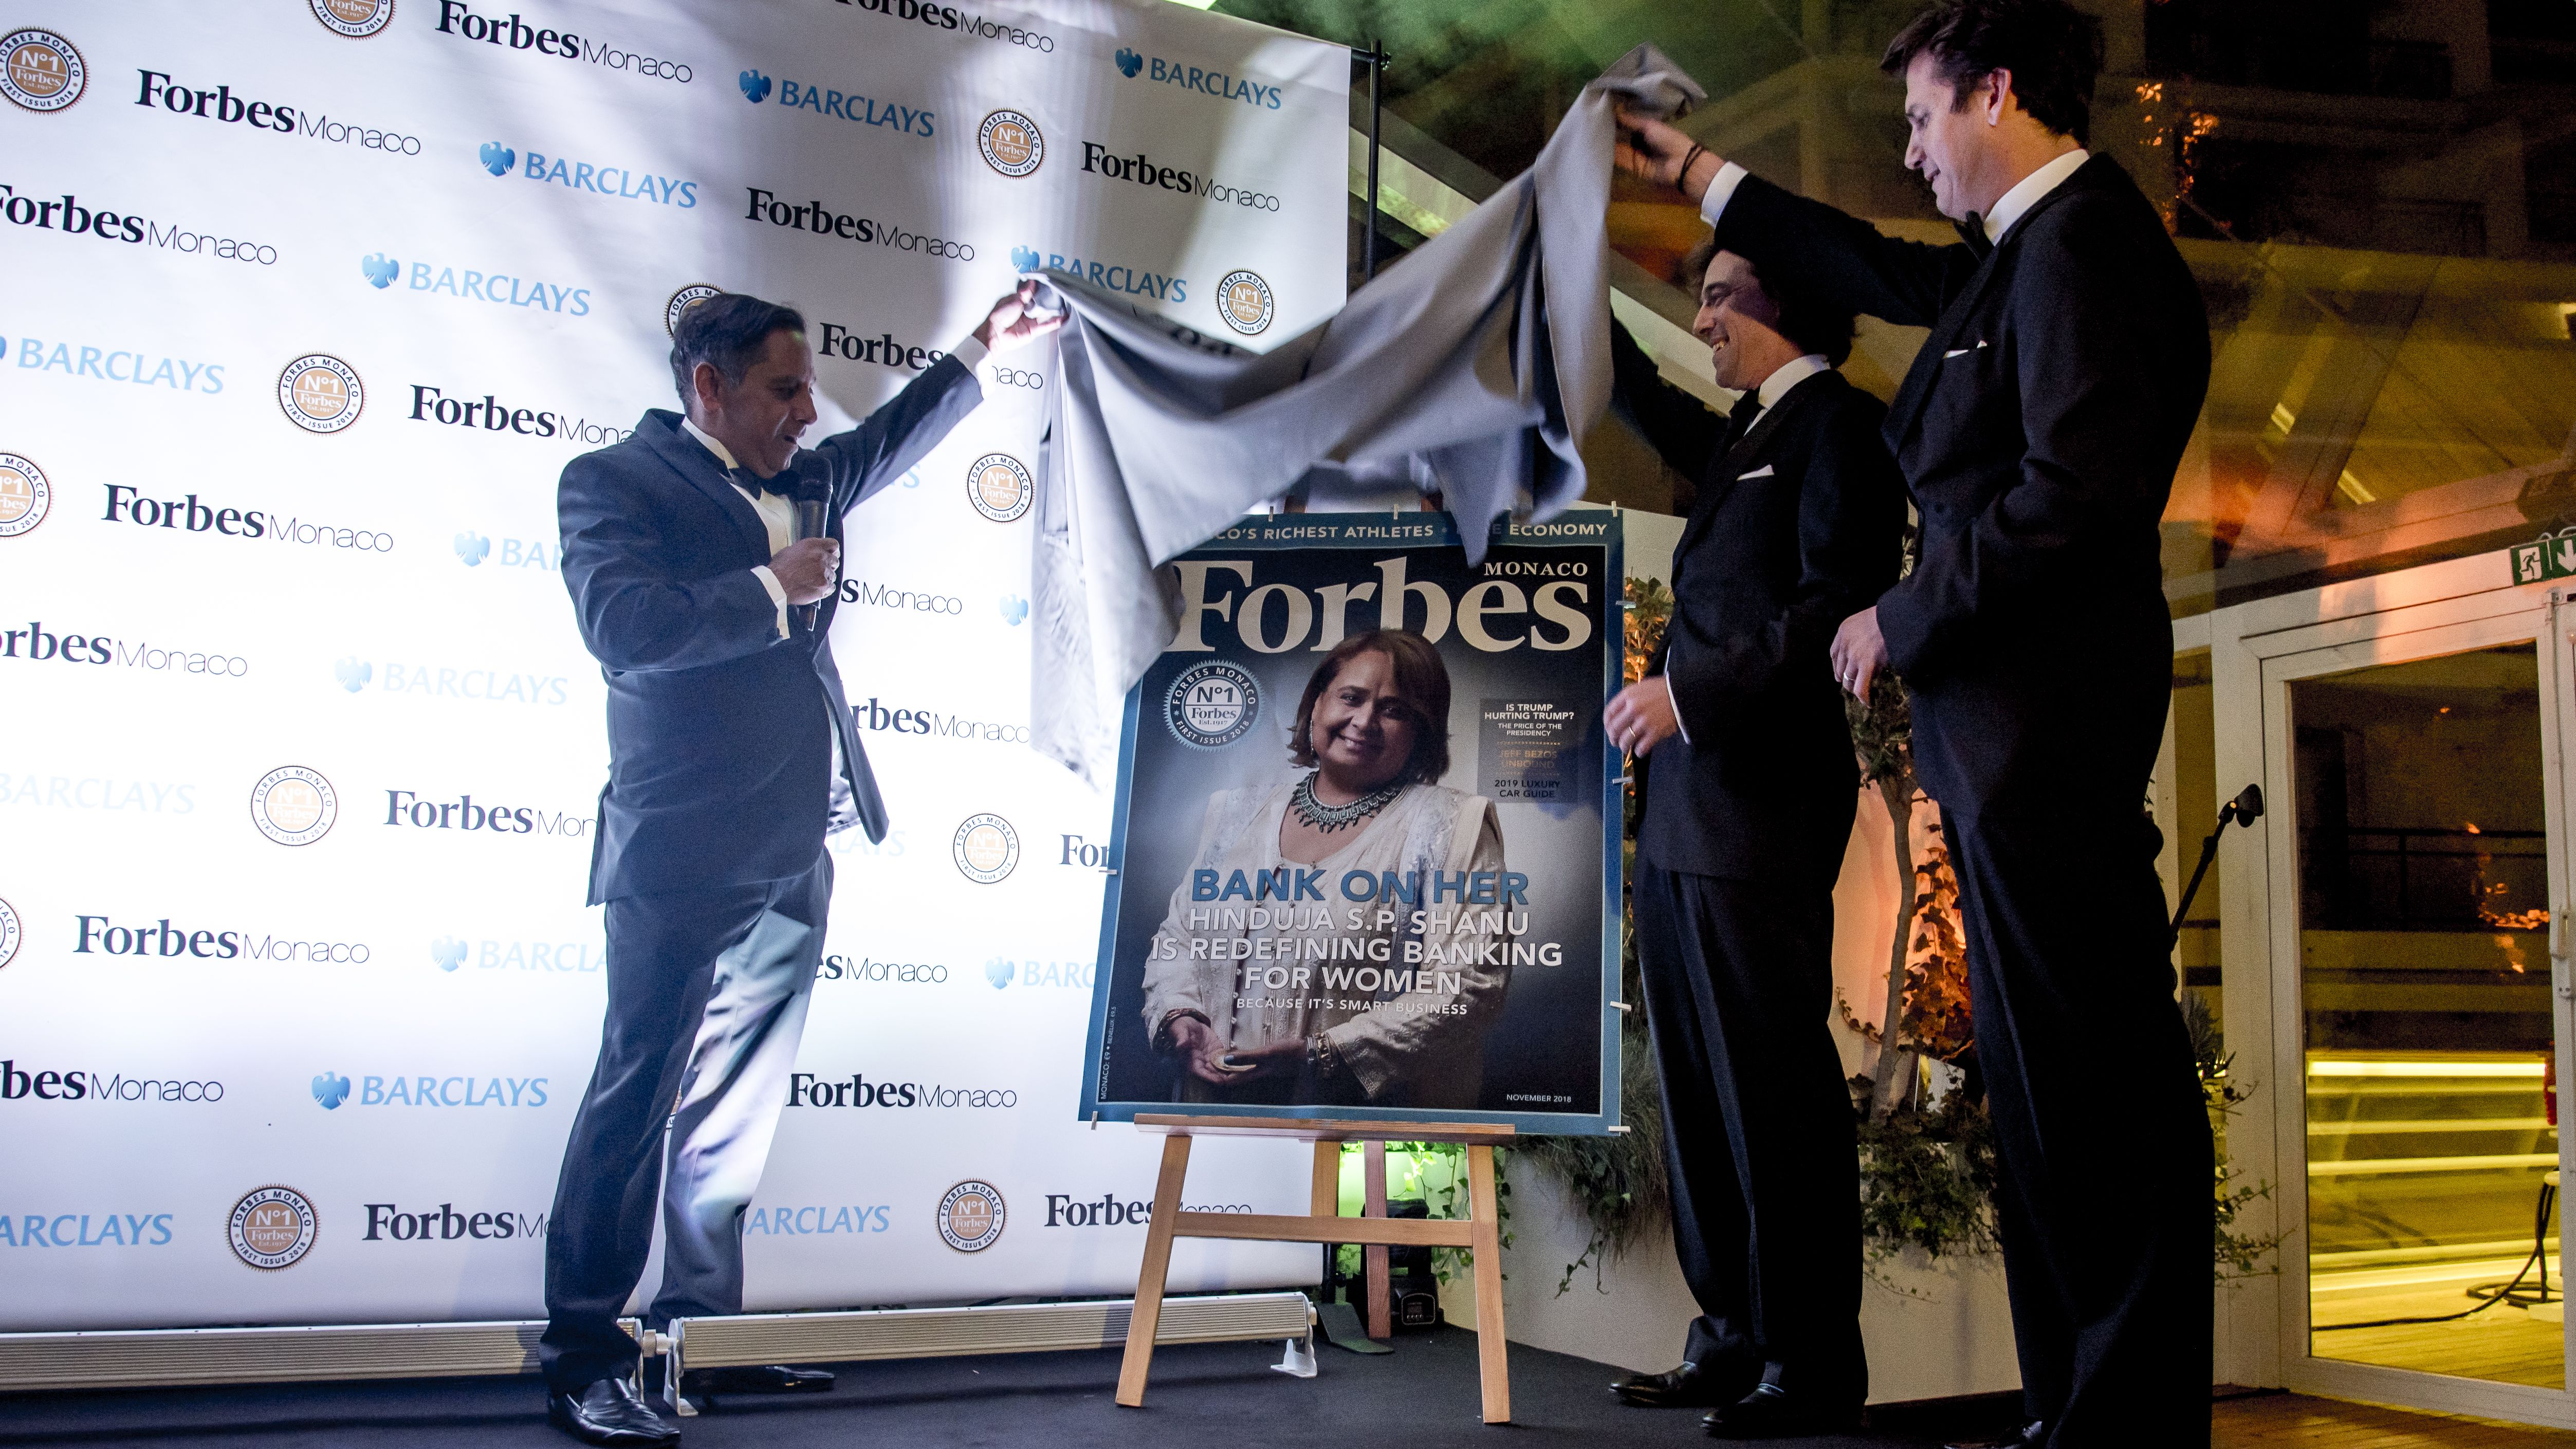 Forbes Monaco first issue cover Hinduja